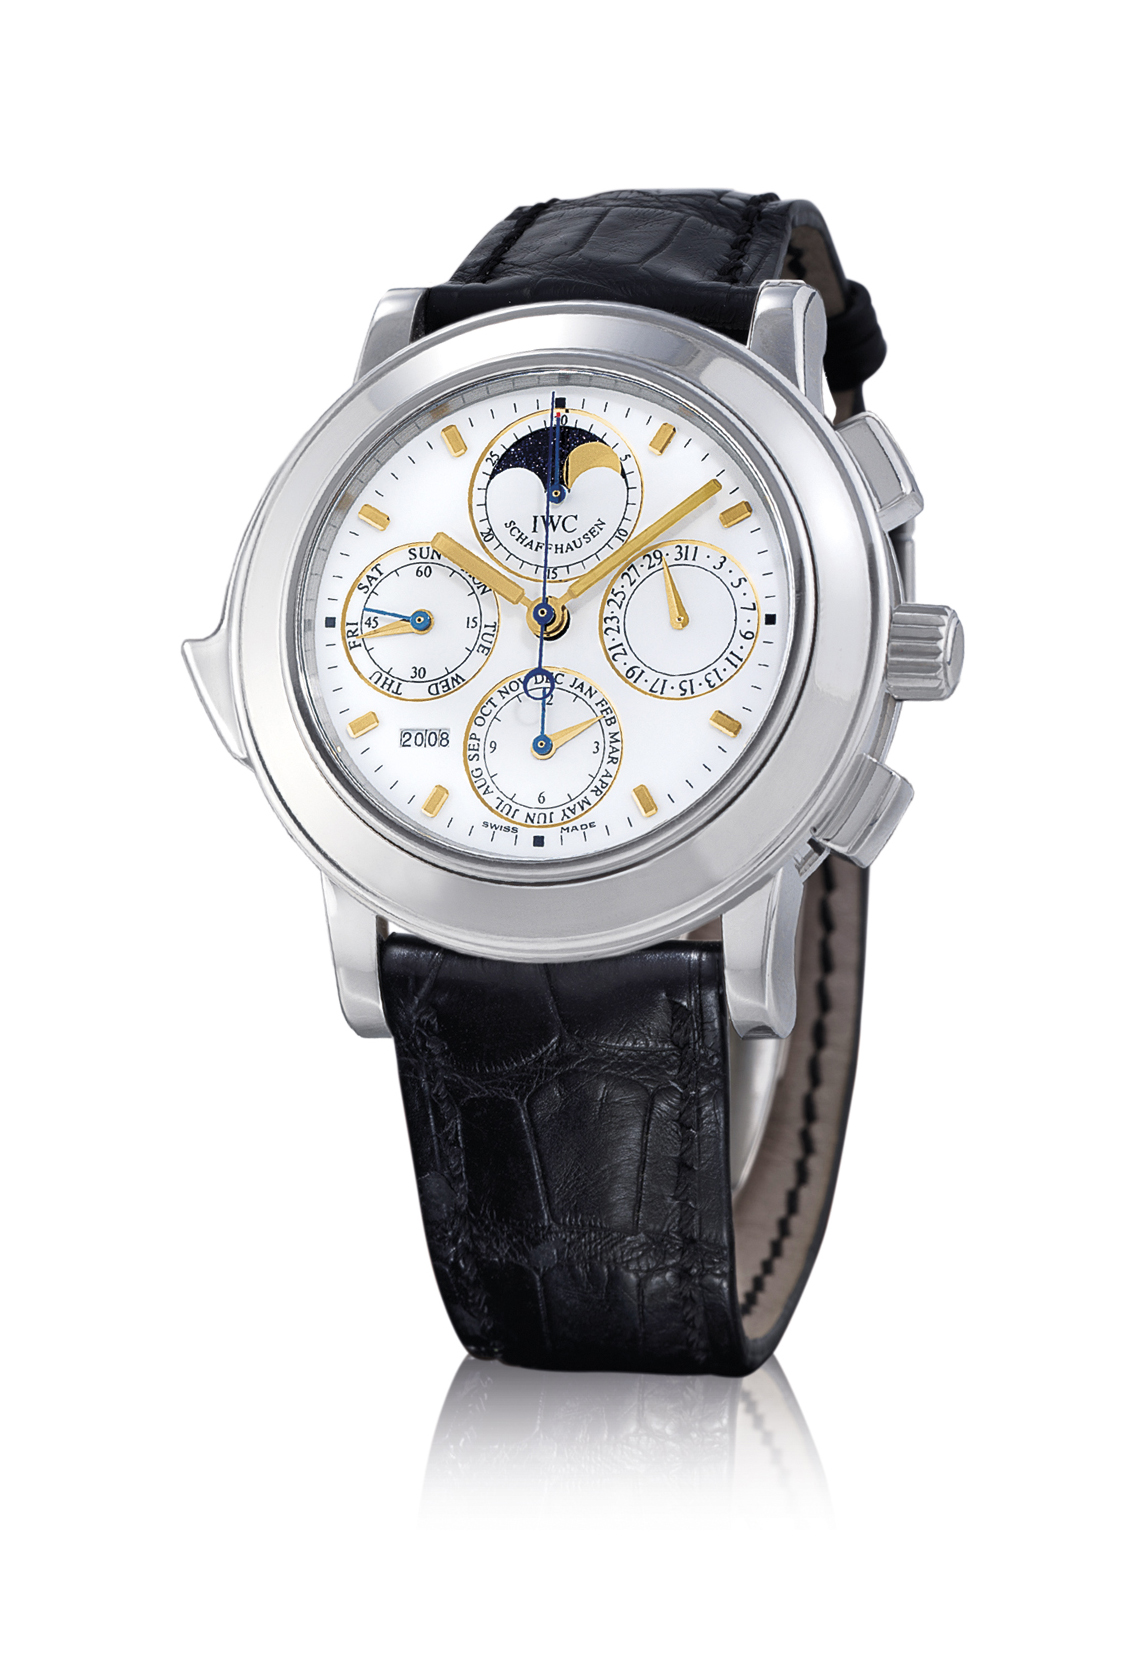 IWC, GRANDE COMPLICATION  PLATINUM AUTOMATIC PERPETUAL CALENDAR MINUTE REPEATING CHRONOGRAPH OVERSIZED WRISTWATCH WITH MOON PHASE DISPLAY, LIMITED EDITION OF 50